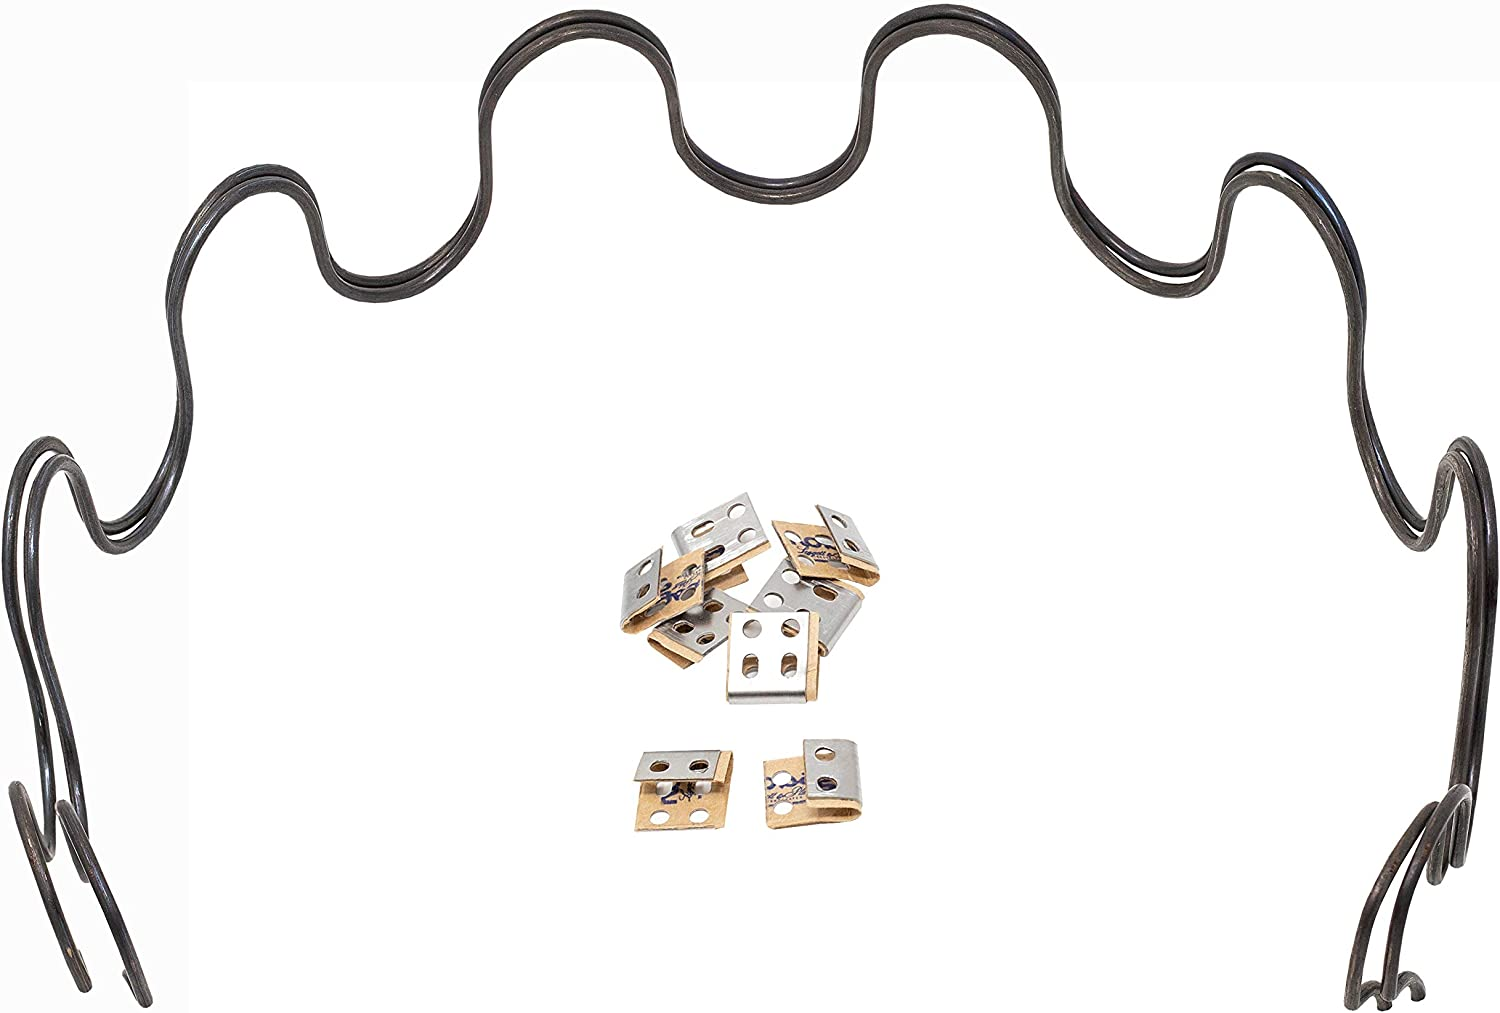 Clips House2Home 27 Sofa Upholstery Spring Replacement Kit 4pk Springs Wire for Furniture Chair Couch Repair Includes Instructions